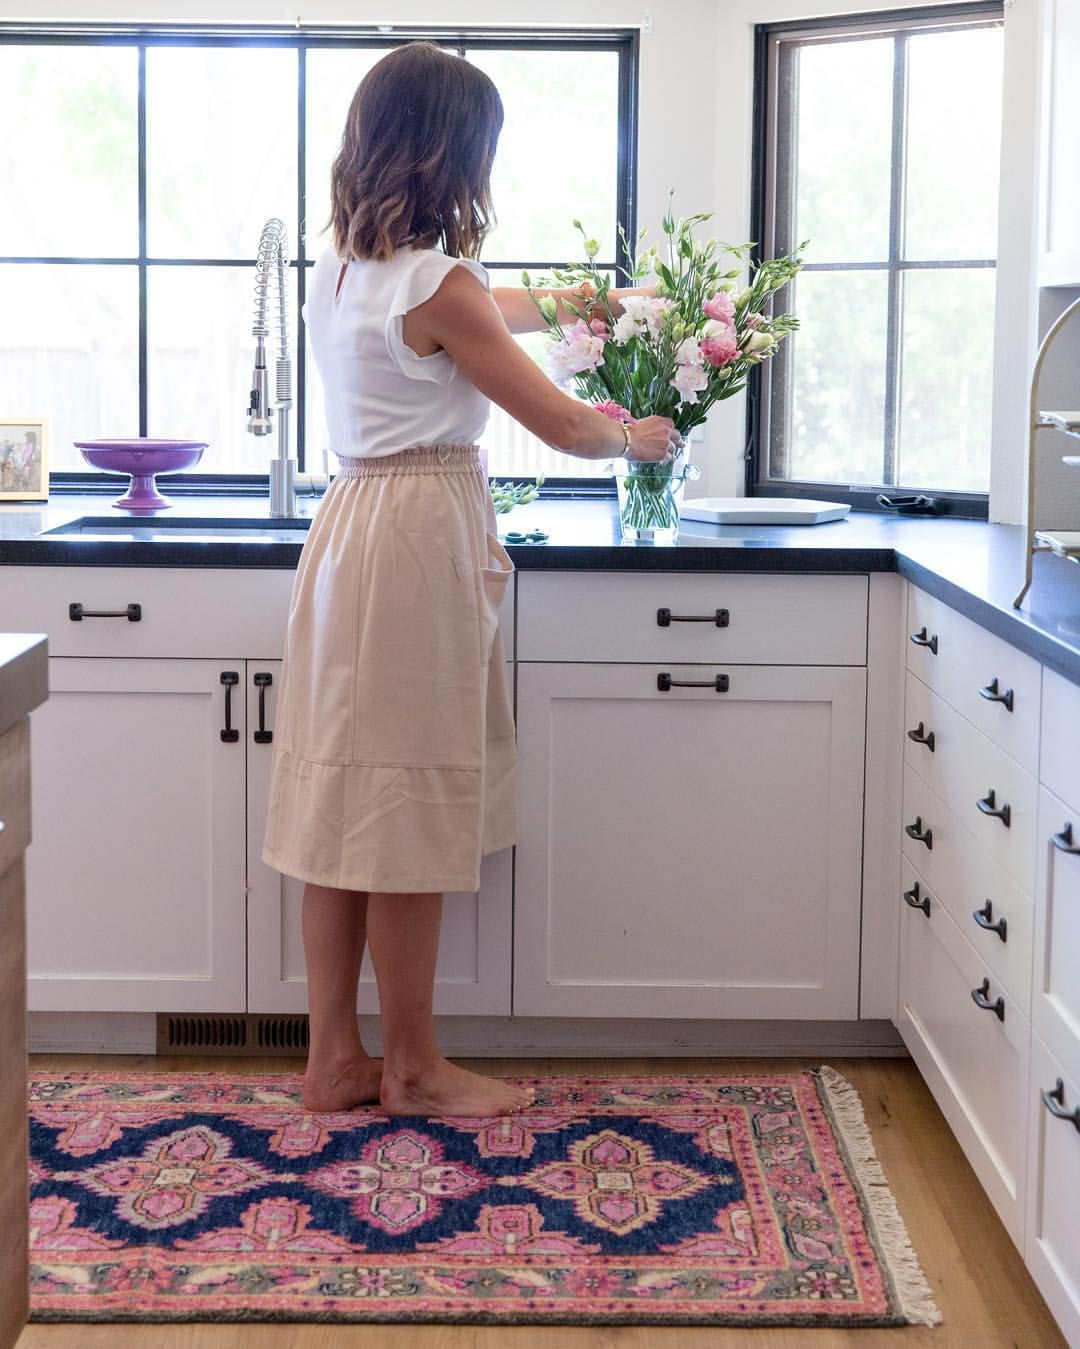 kitchen rugs cheap white cabinets 25 stunning picture for choosing the perfect vintage 23 best stylish kitchens with ideas kitchenrugs